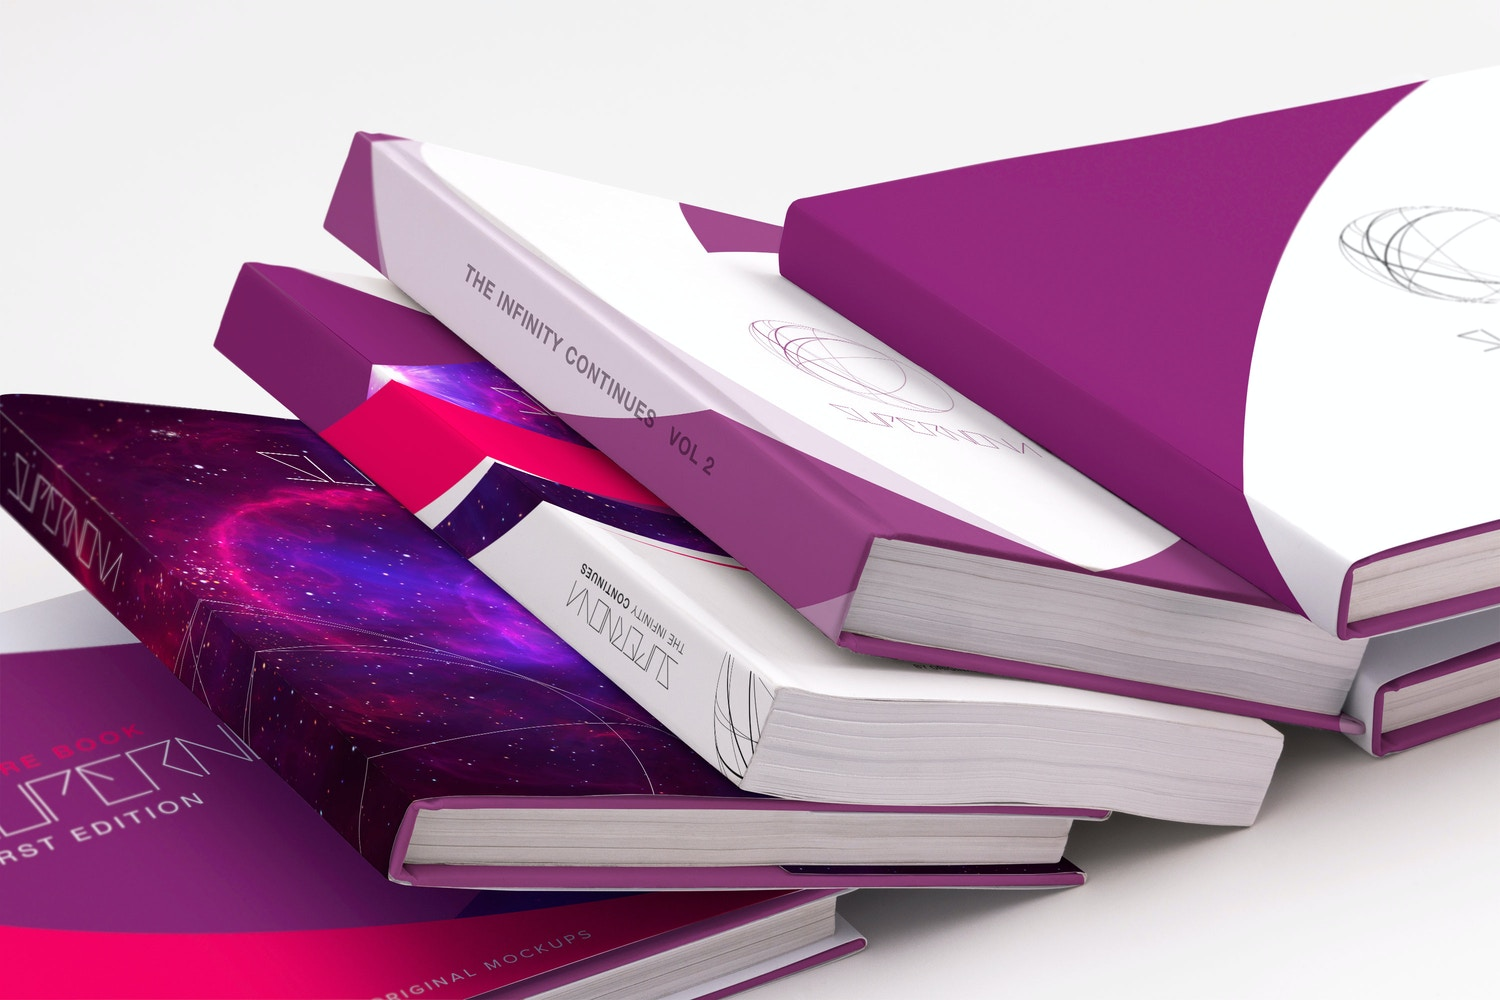 Others Books PSD Mockup 04 por Original Mockups en Original Mockups